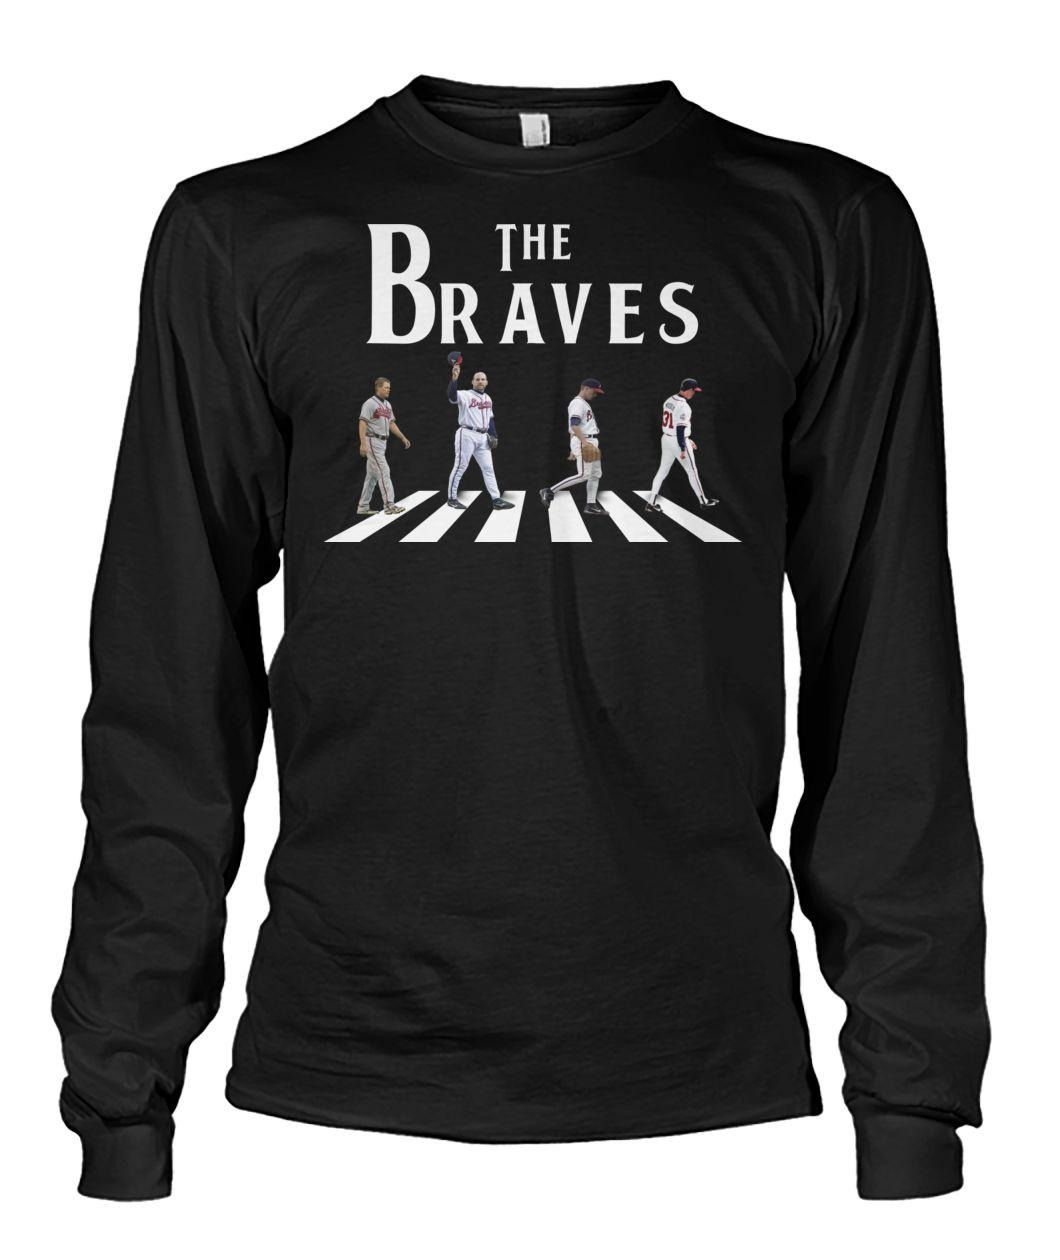 The braves abbey road long sleeved shirt